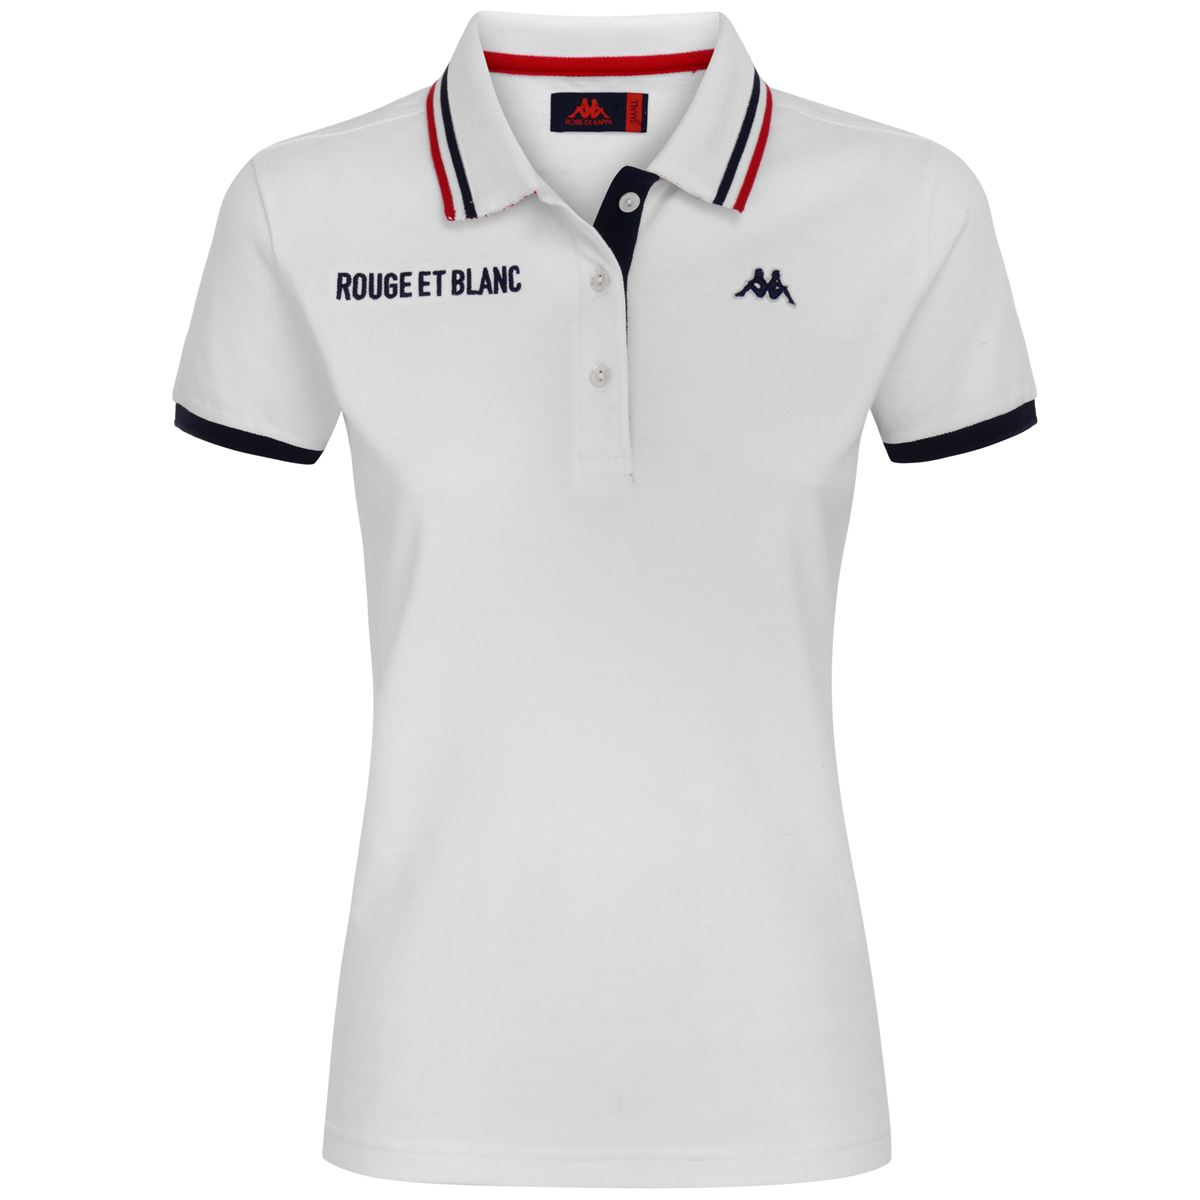 Robe di Kappa Polo Shirts donna-61113VW